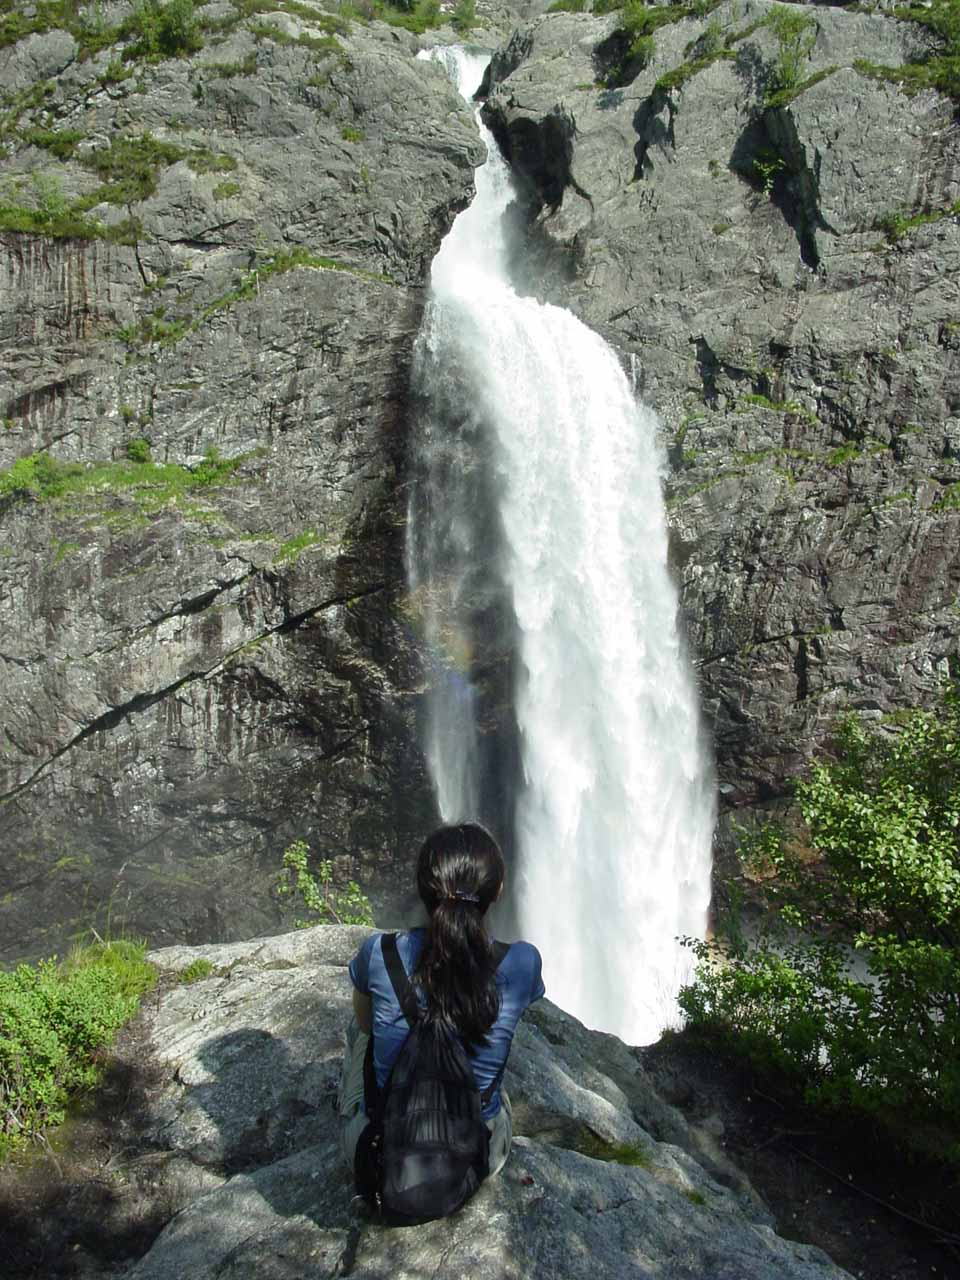 After visiting Tengsfossen, we then headed to the beautiful Manafossen, which was probably our favorite waterfall of Rogaland County and one of our favorites in all of Norway